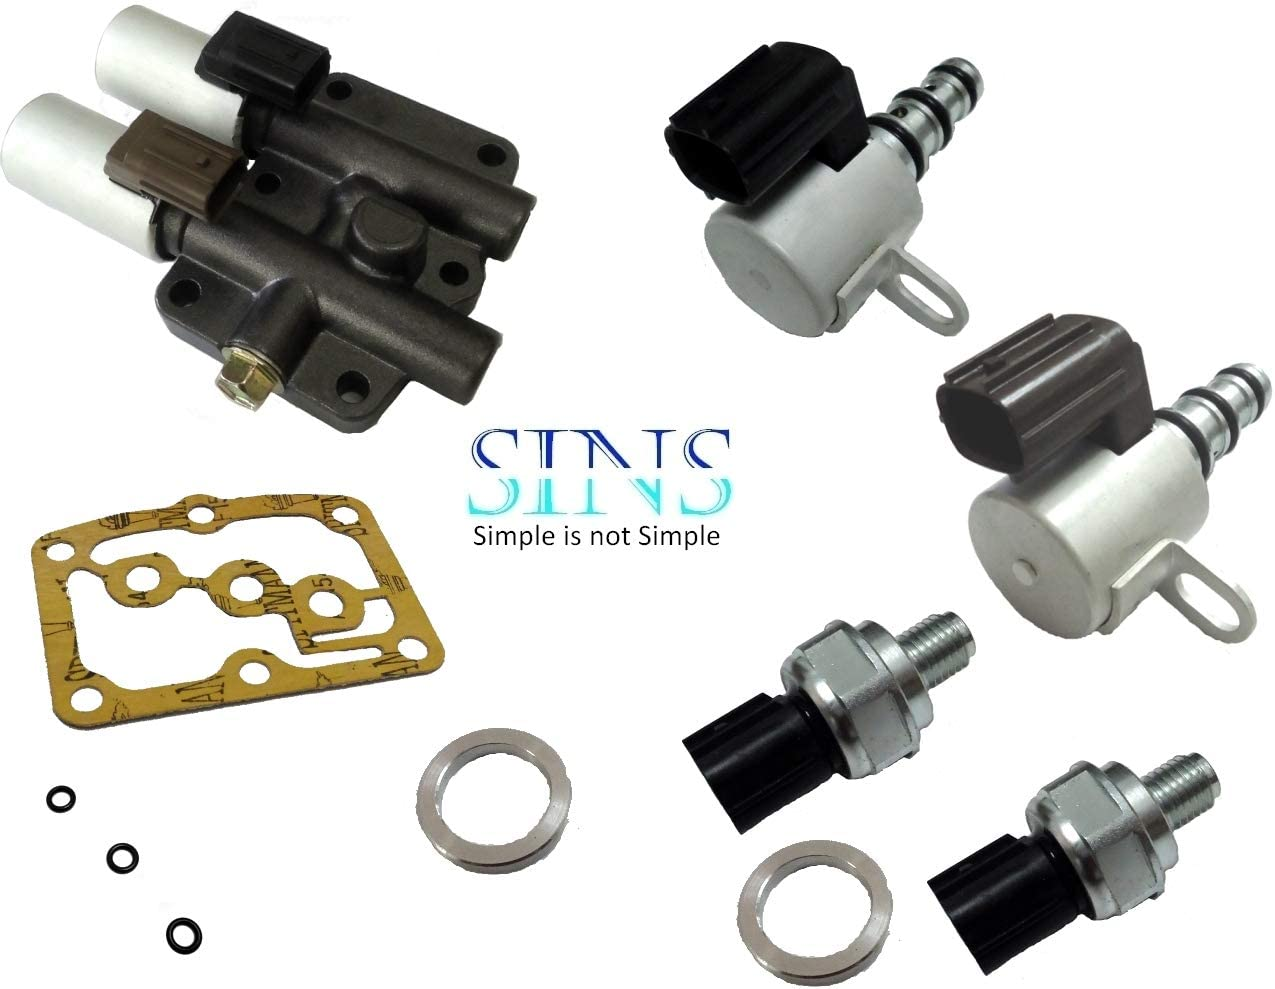 Accord Odyssey CL TL Transmission Solenoid Pressure Switch Kit 28250-P6H-024 28400-P6H-013 28500-P6H-013 28600-P7Z-013 SINS